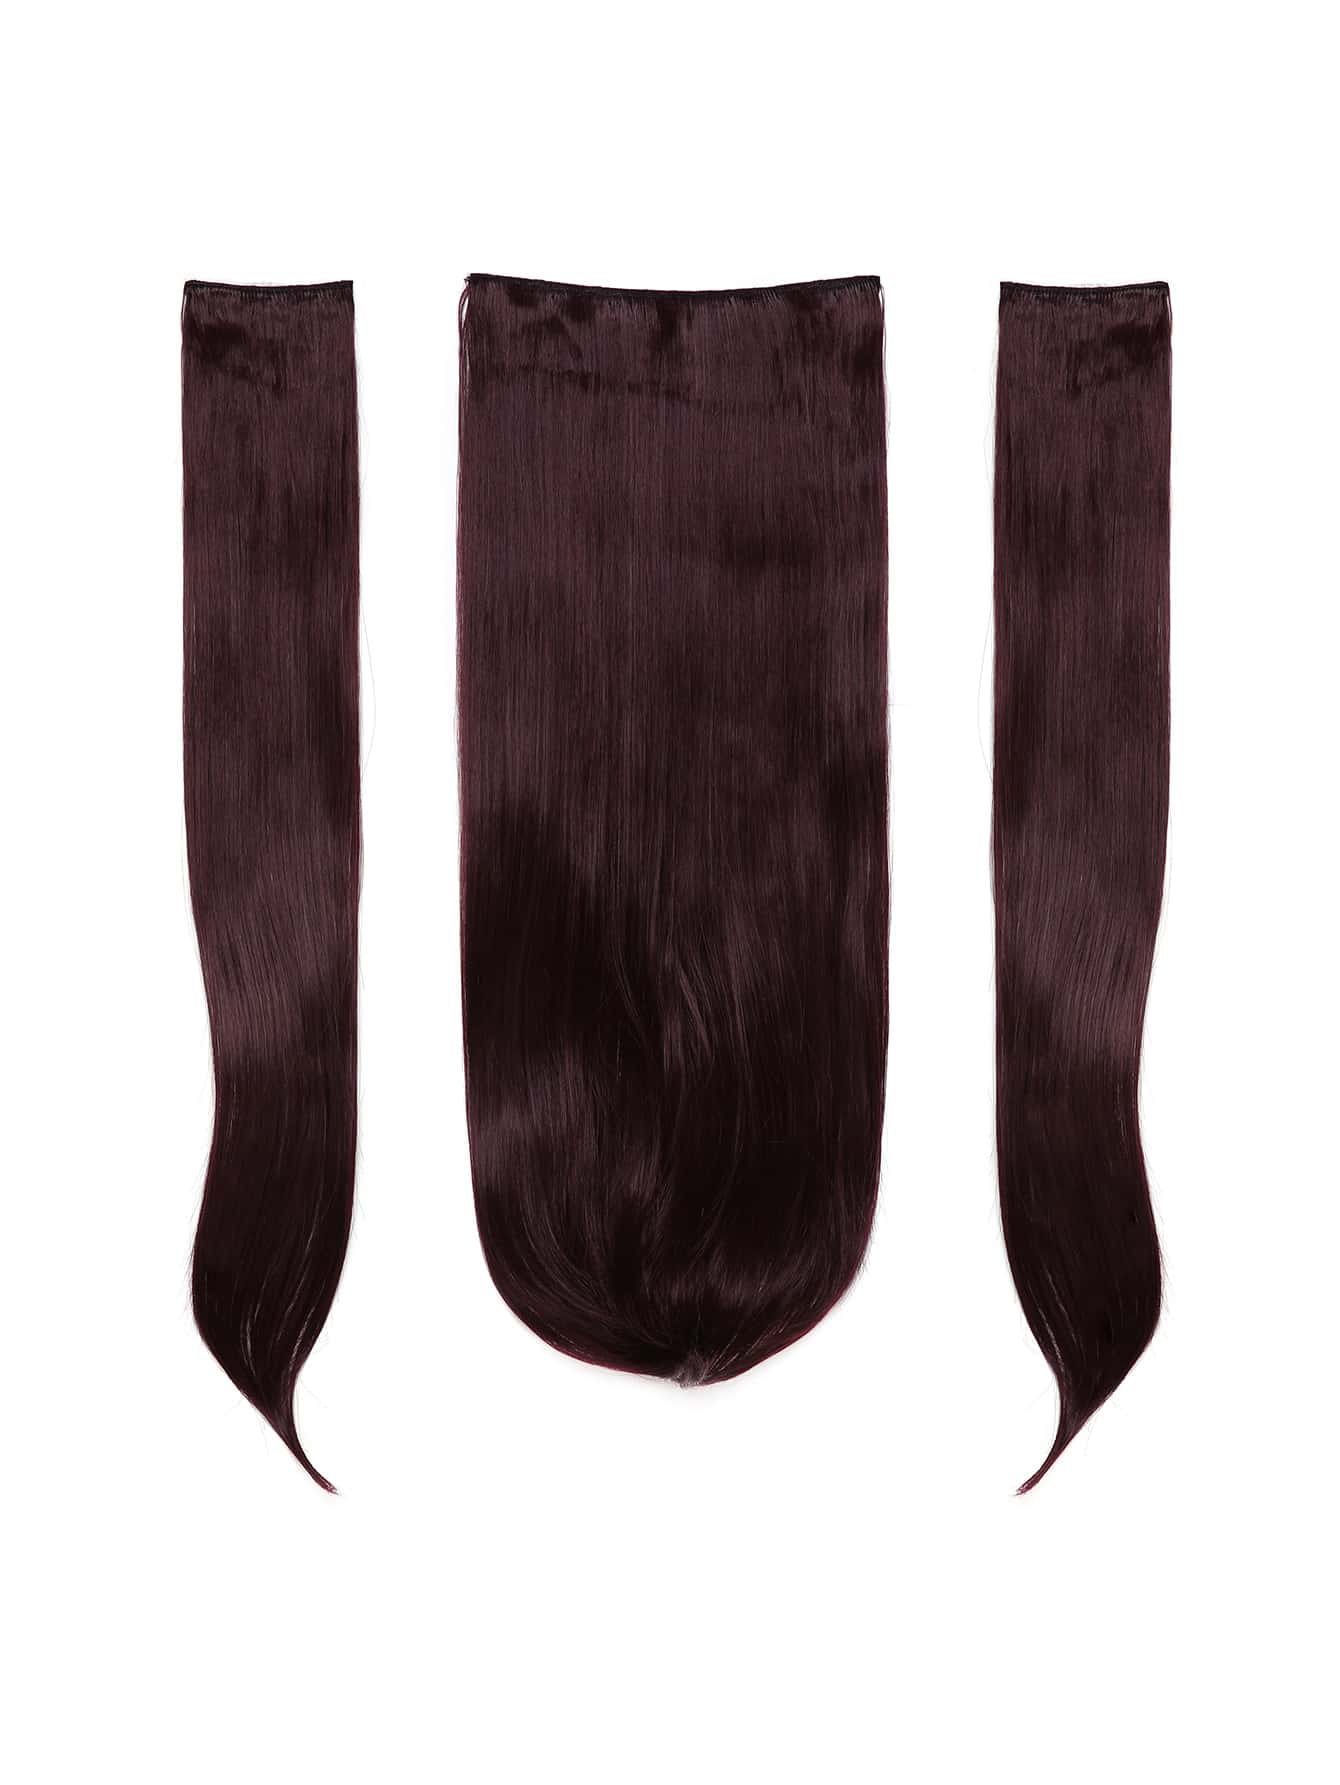 Plum Clip In Straight Hair Extension 3pcs